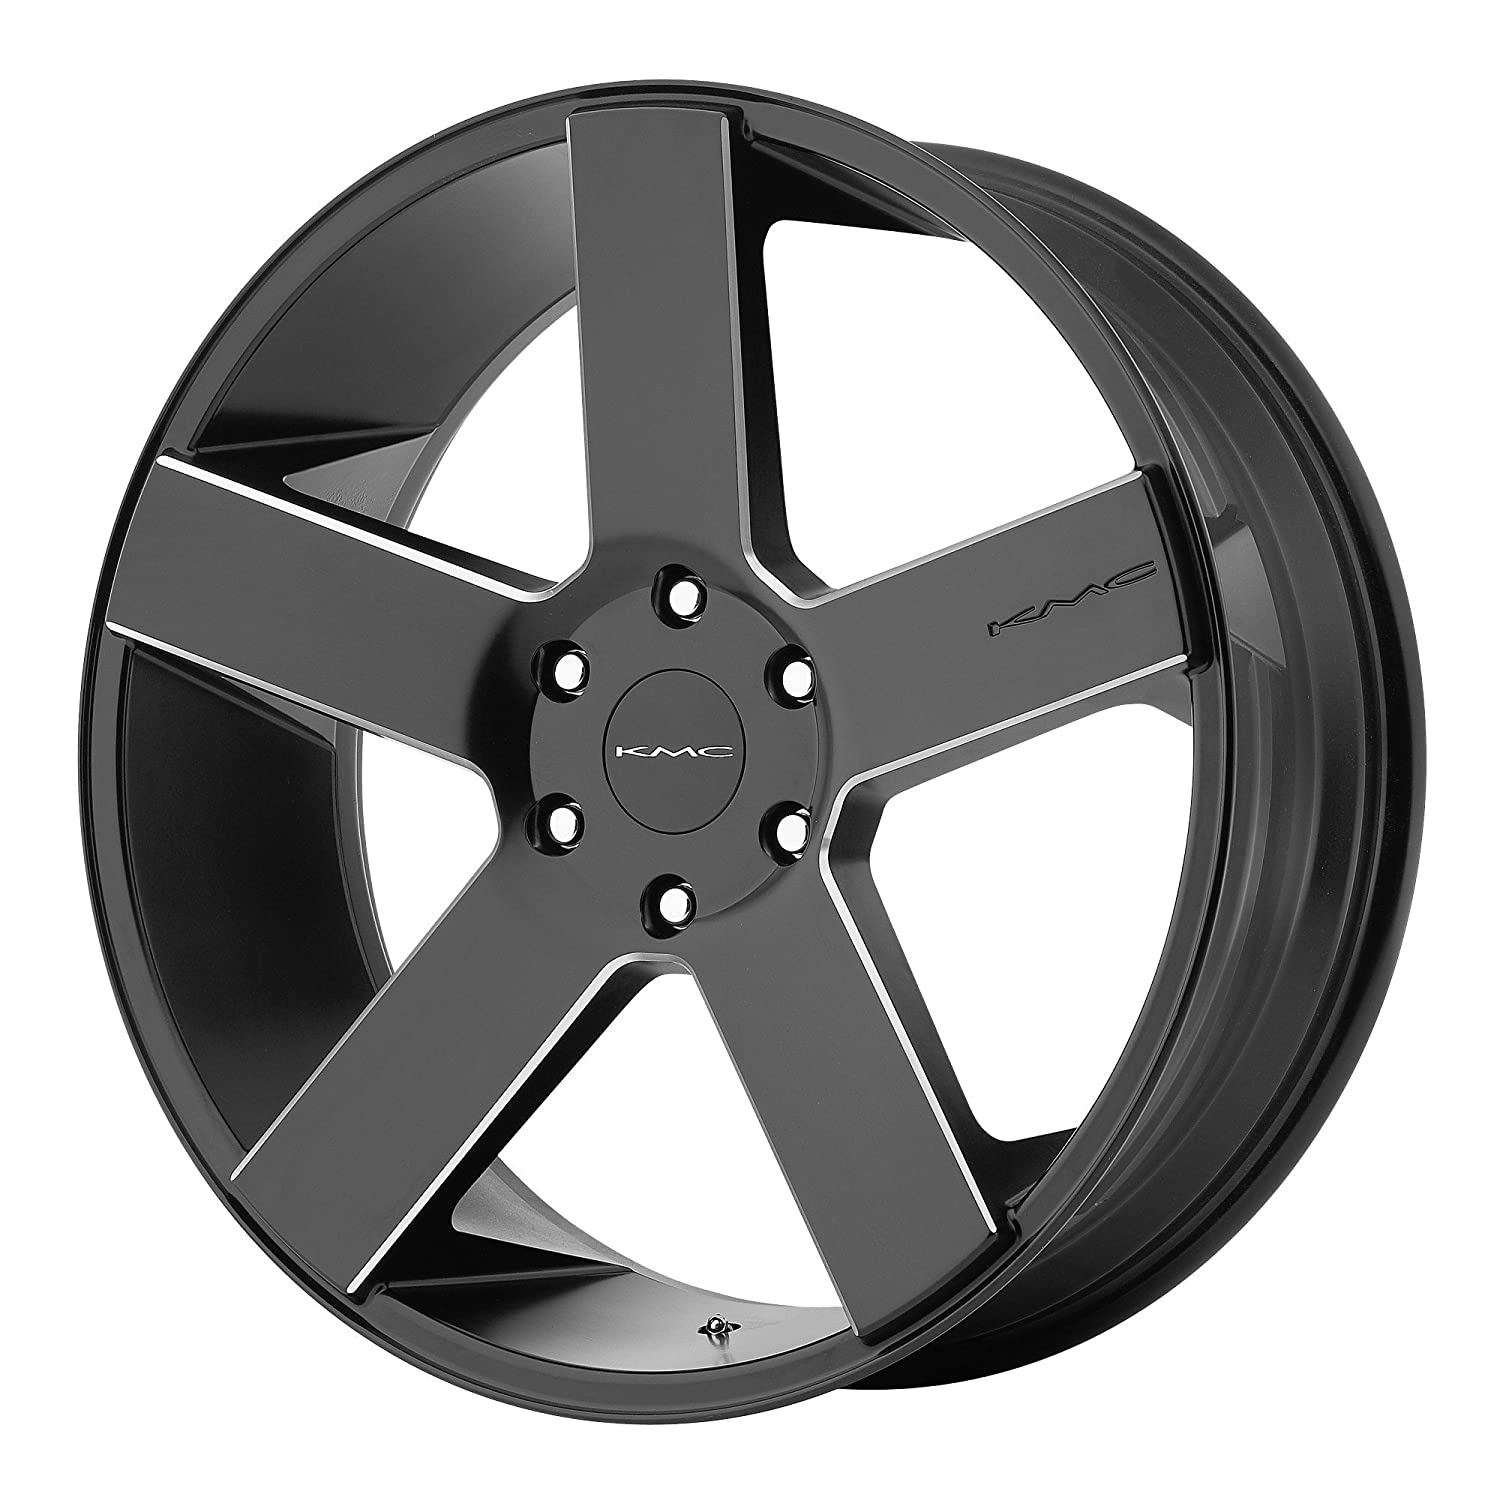 Amazon com kmc wheels km694 wishbone satin black wheel 20x8 5 5x120mm 38mm offset automotive